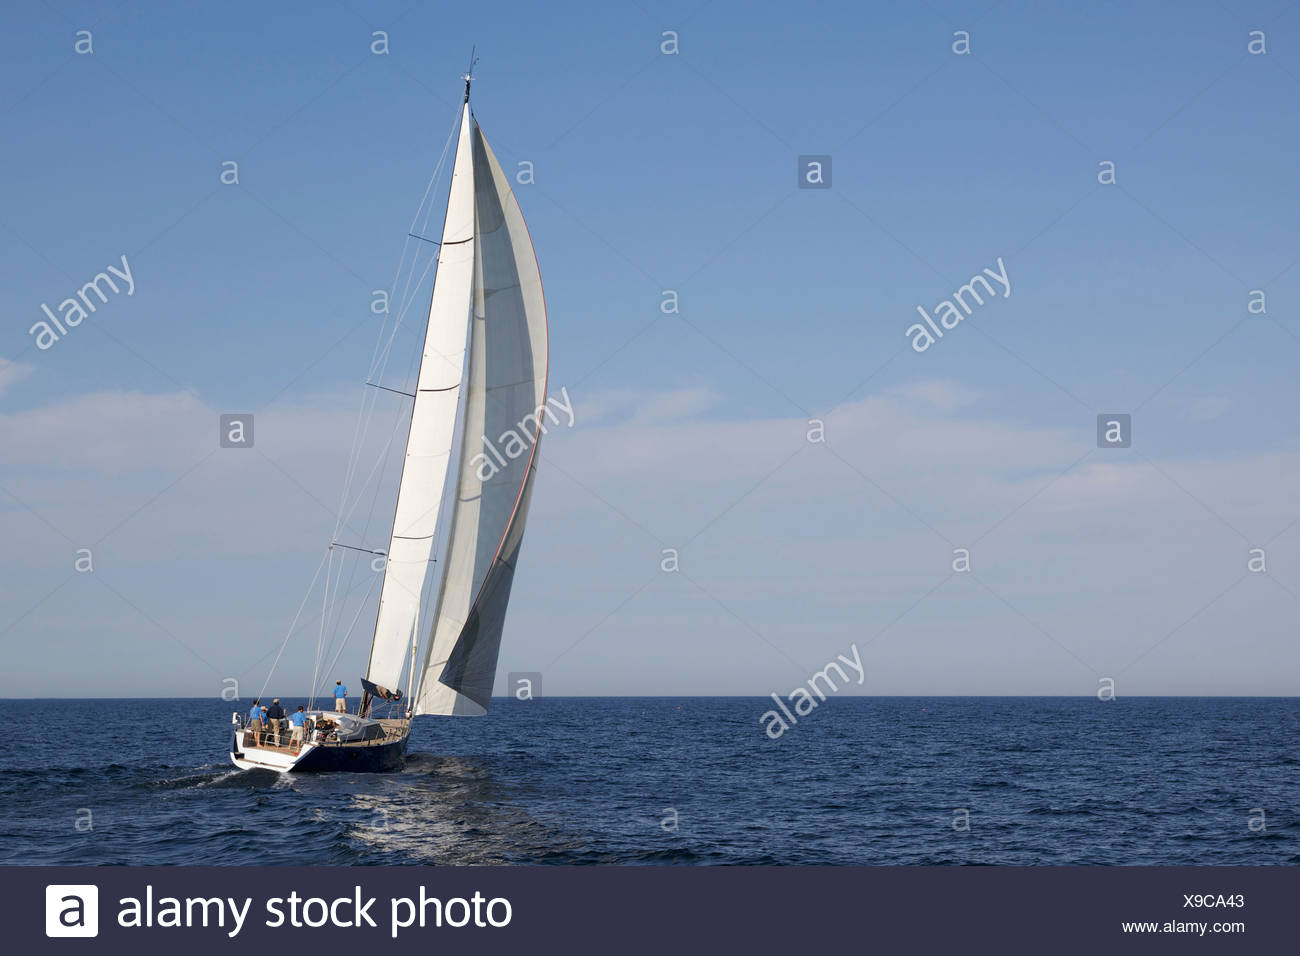 A crew races a modern ocean-going sailing yacht. - Stock Image